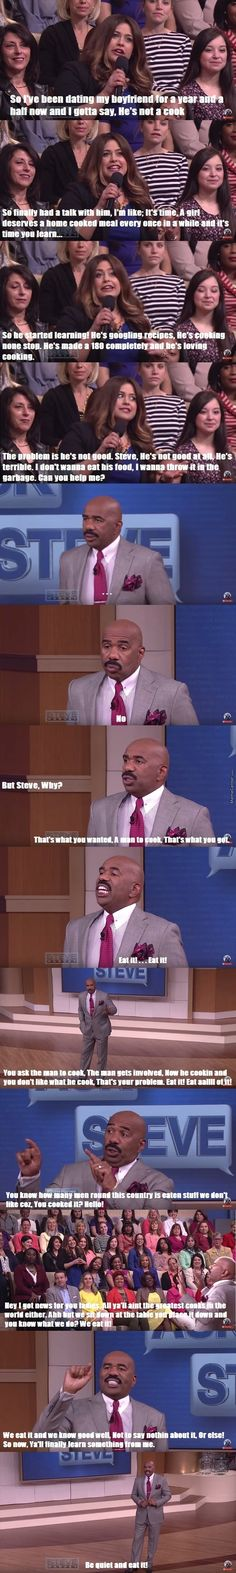 Steve Harvey tells women what's up